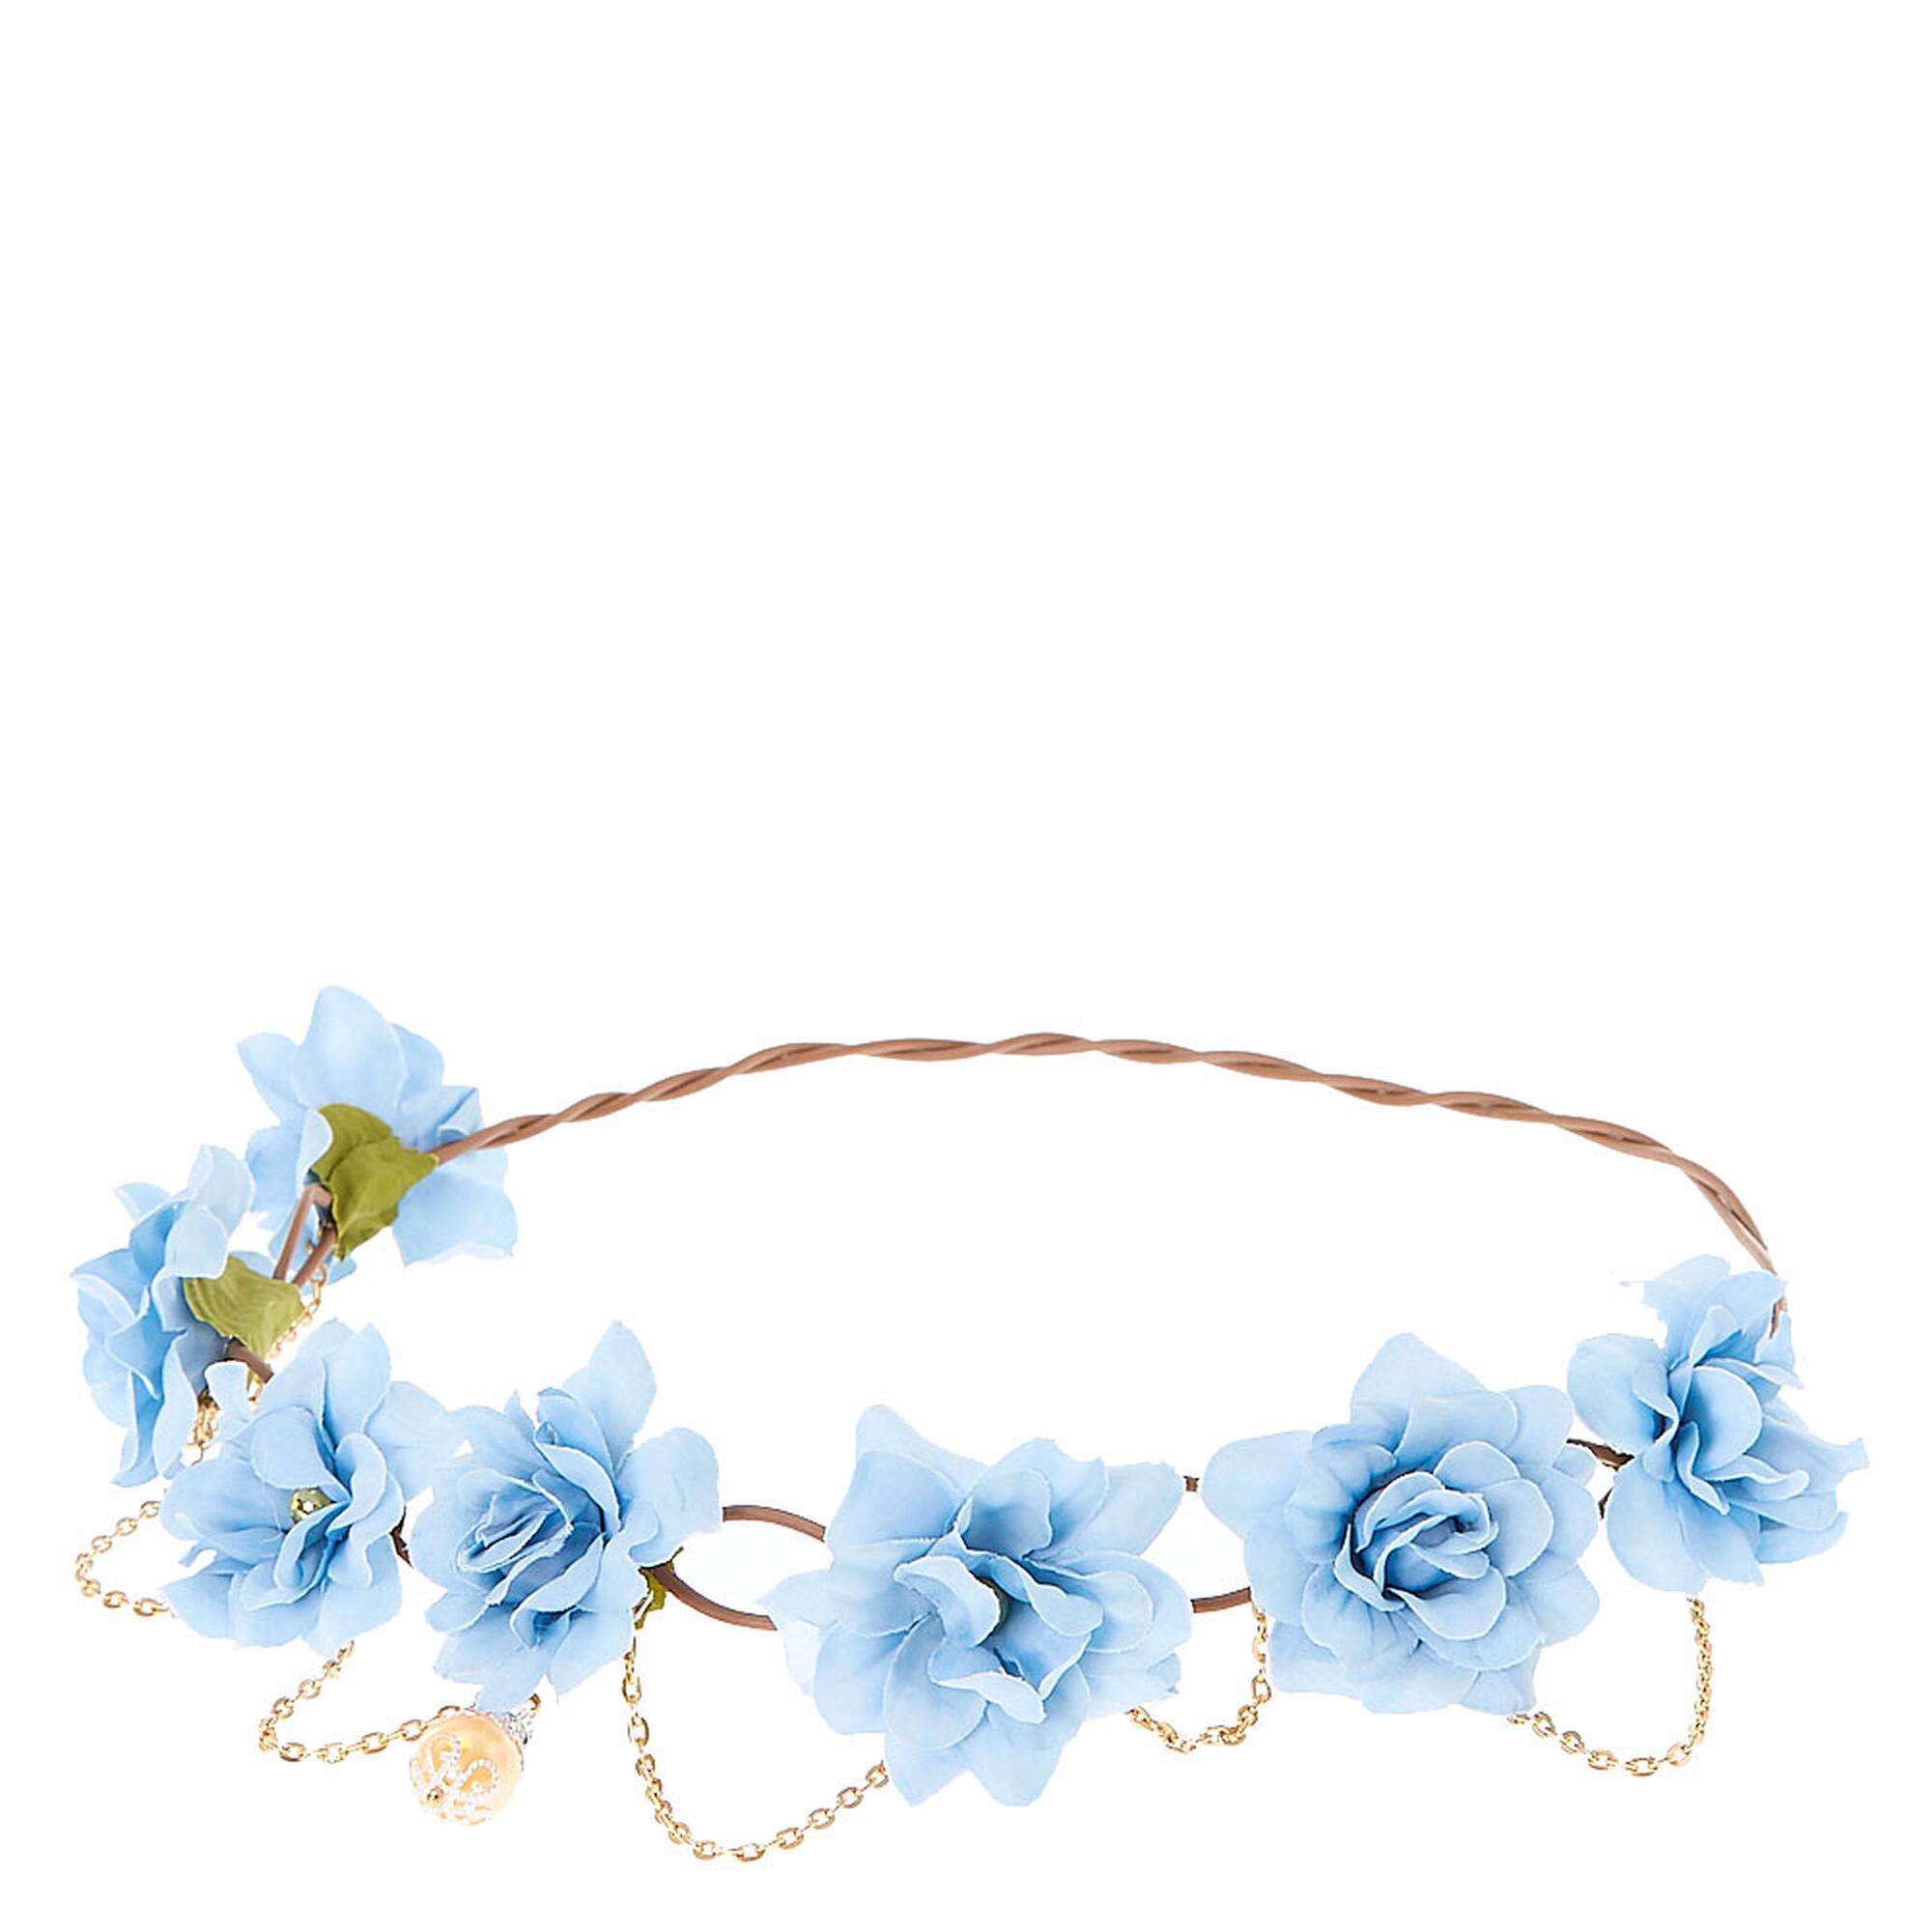 Blue Flowers Golden Chain Hair Flower Crown Icing Us